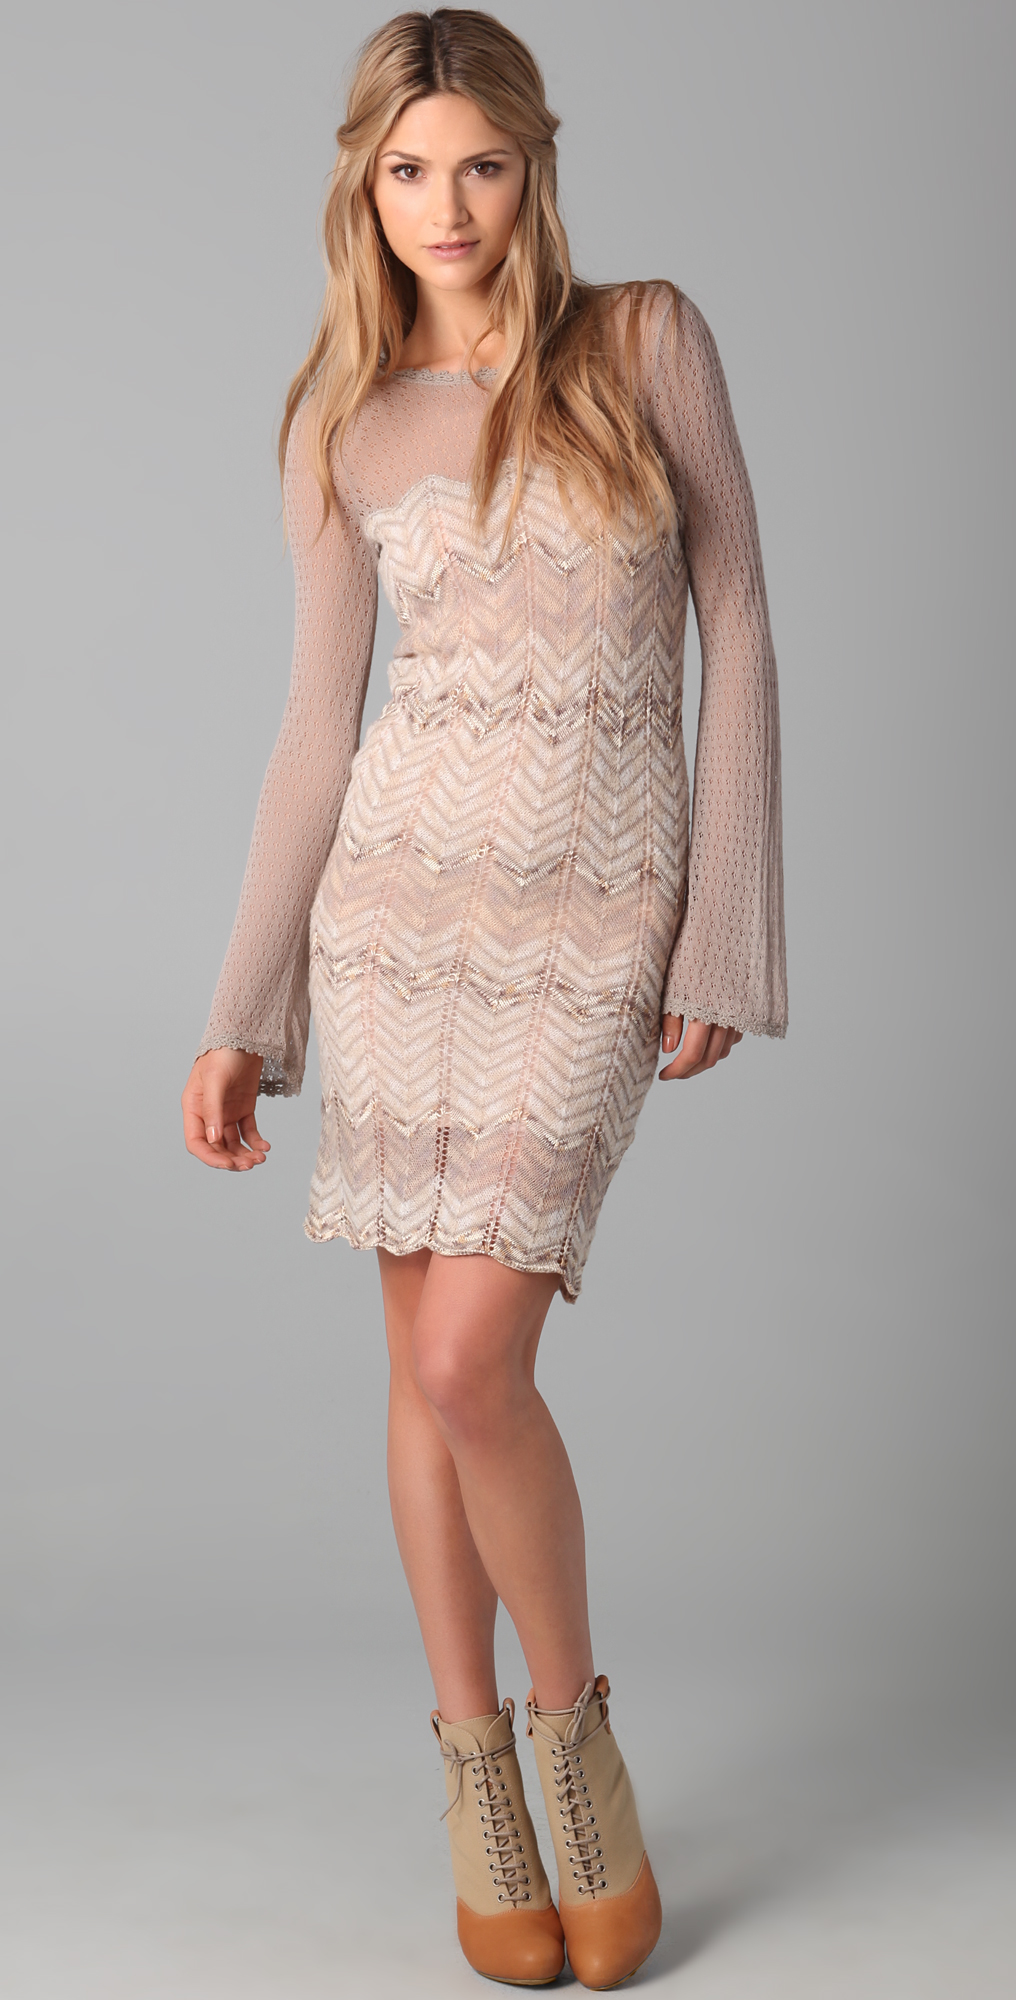 666ee314dab75 Lyst - Free People Chevron Sweater Dress in Natural